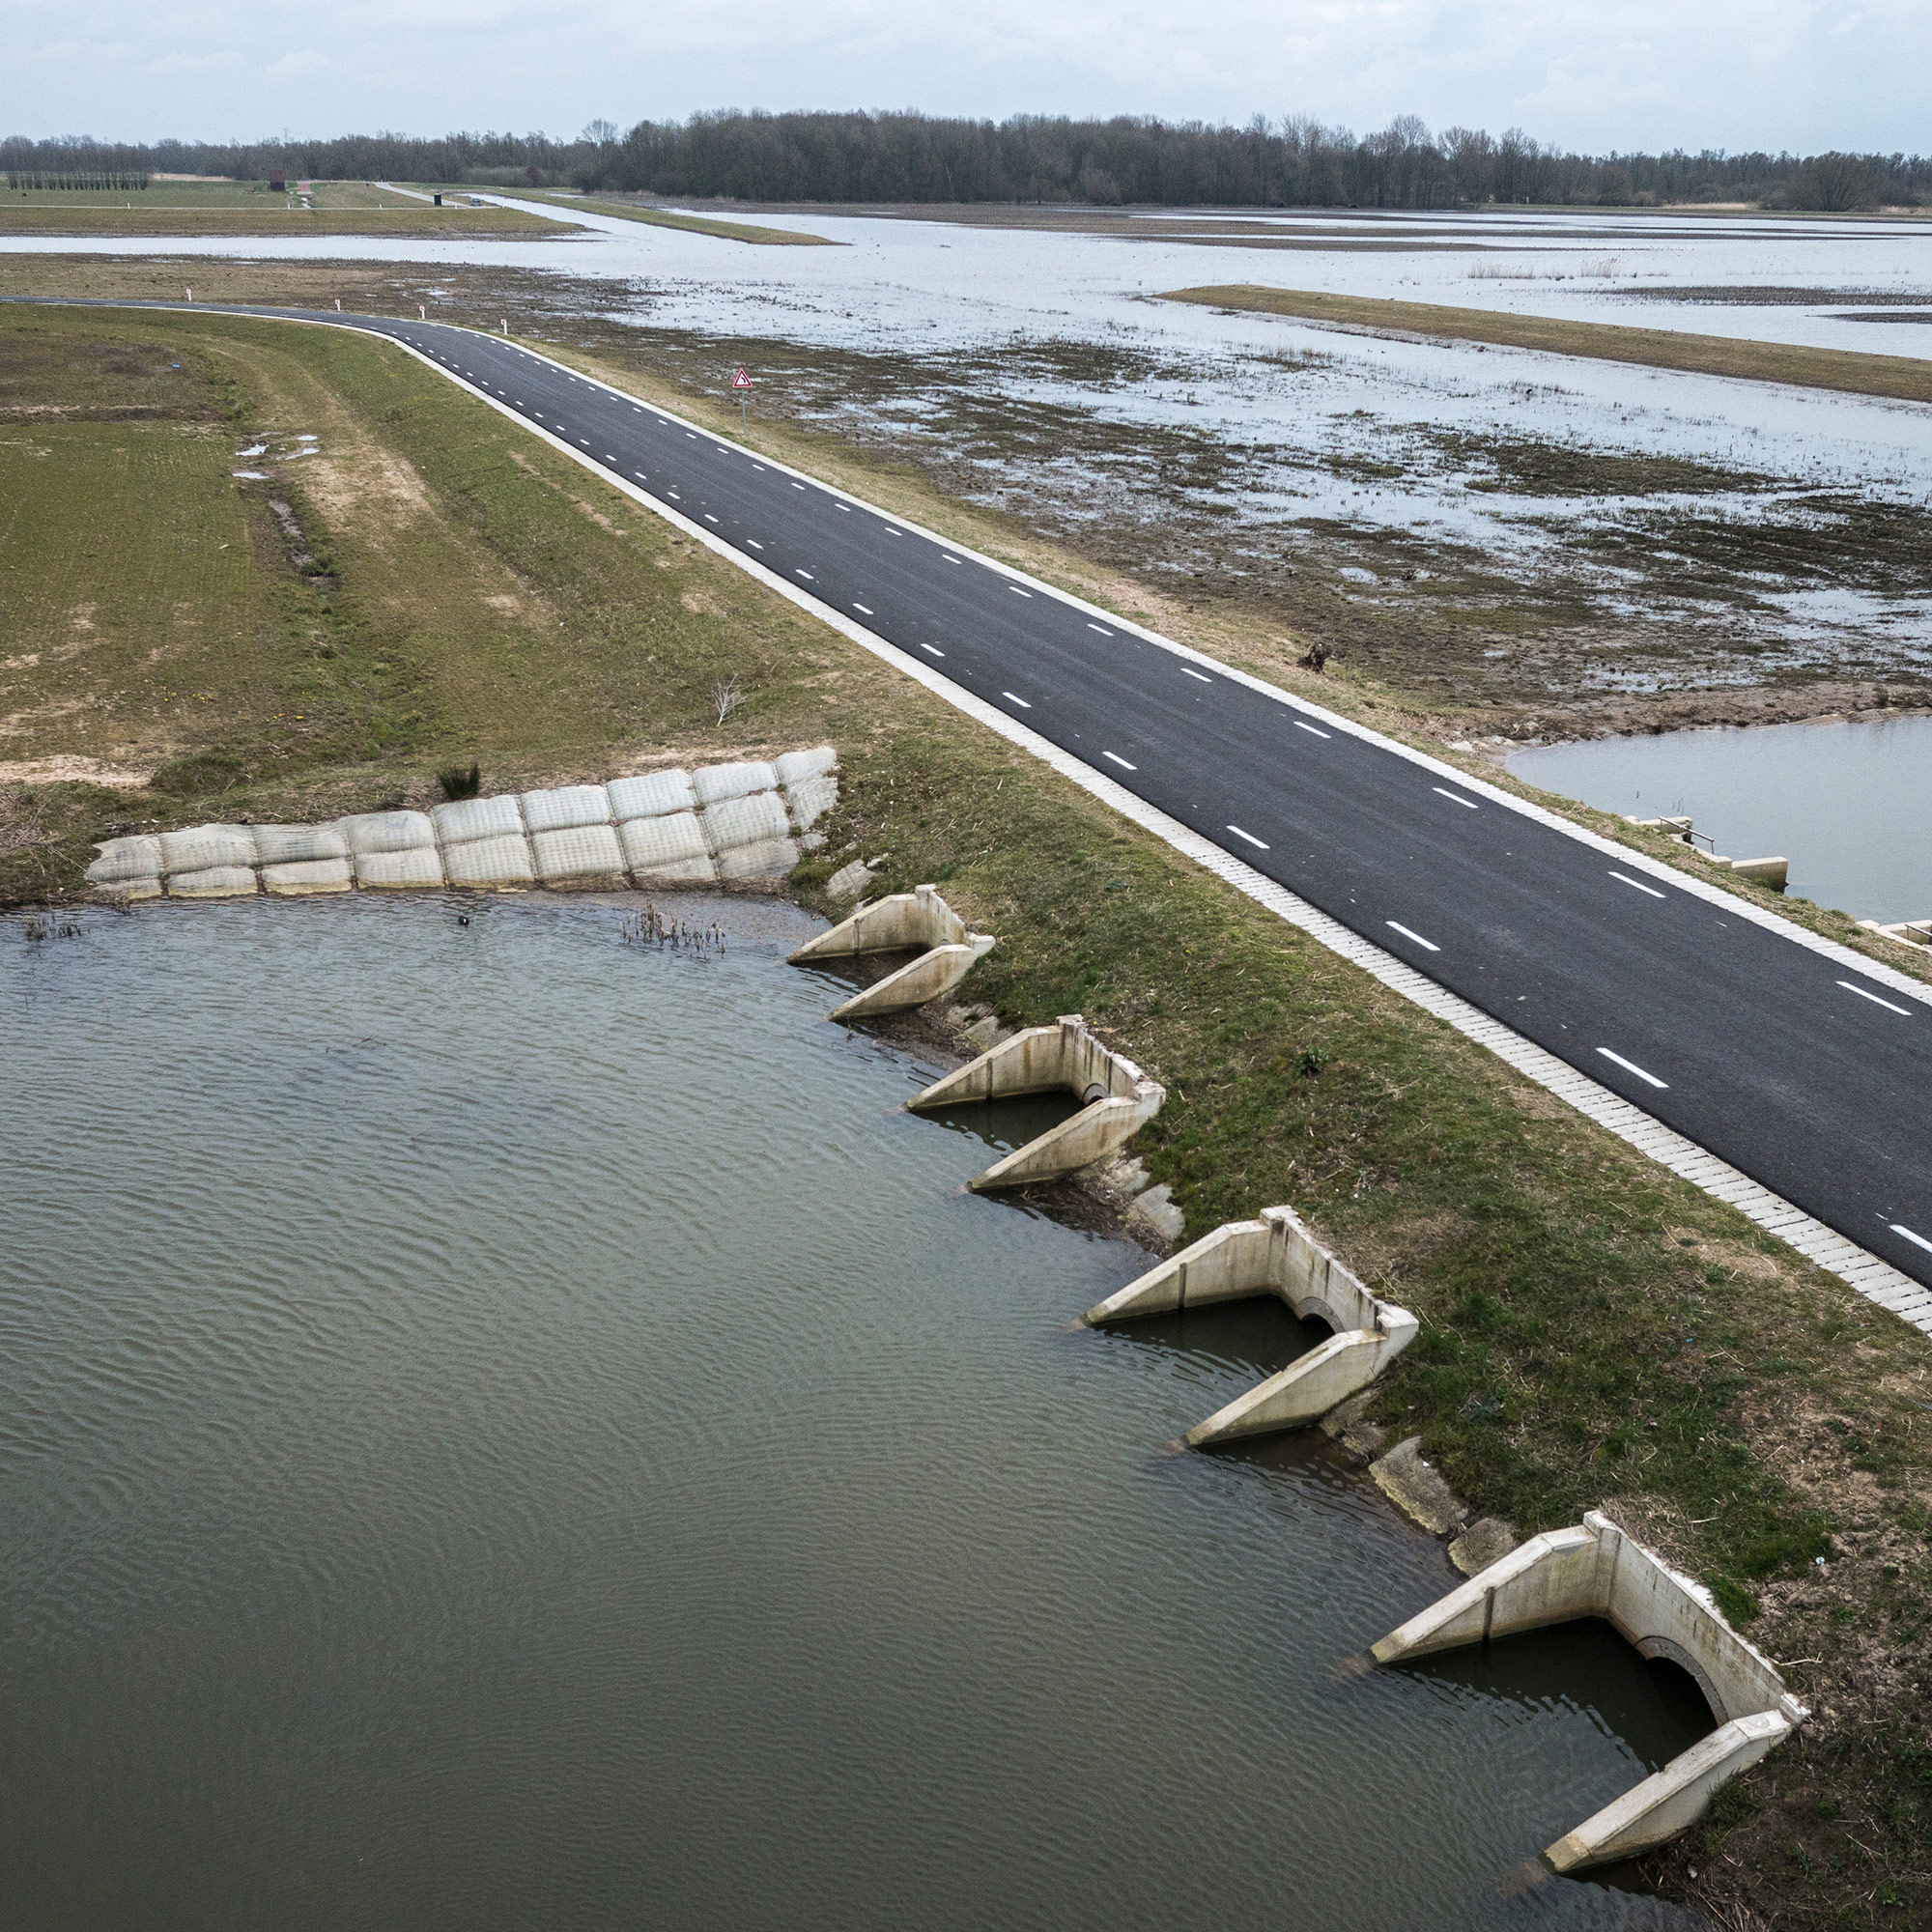 Historic floodplain the Noordwaard polder. A huge area of polder is slowly being re-flooded to make room for the river. New roads have been constructed. (Photo by Joris van Gennip/GroundTruth)